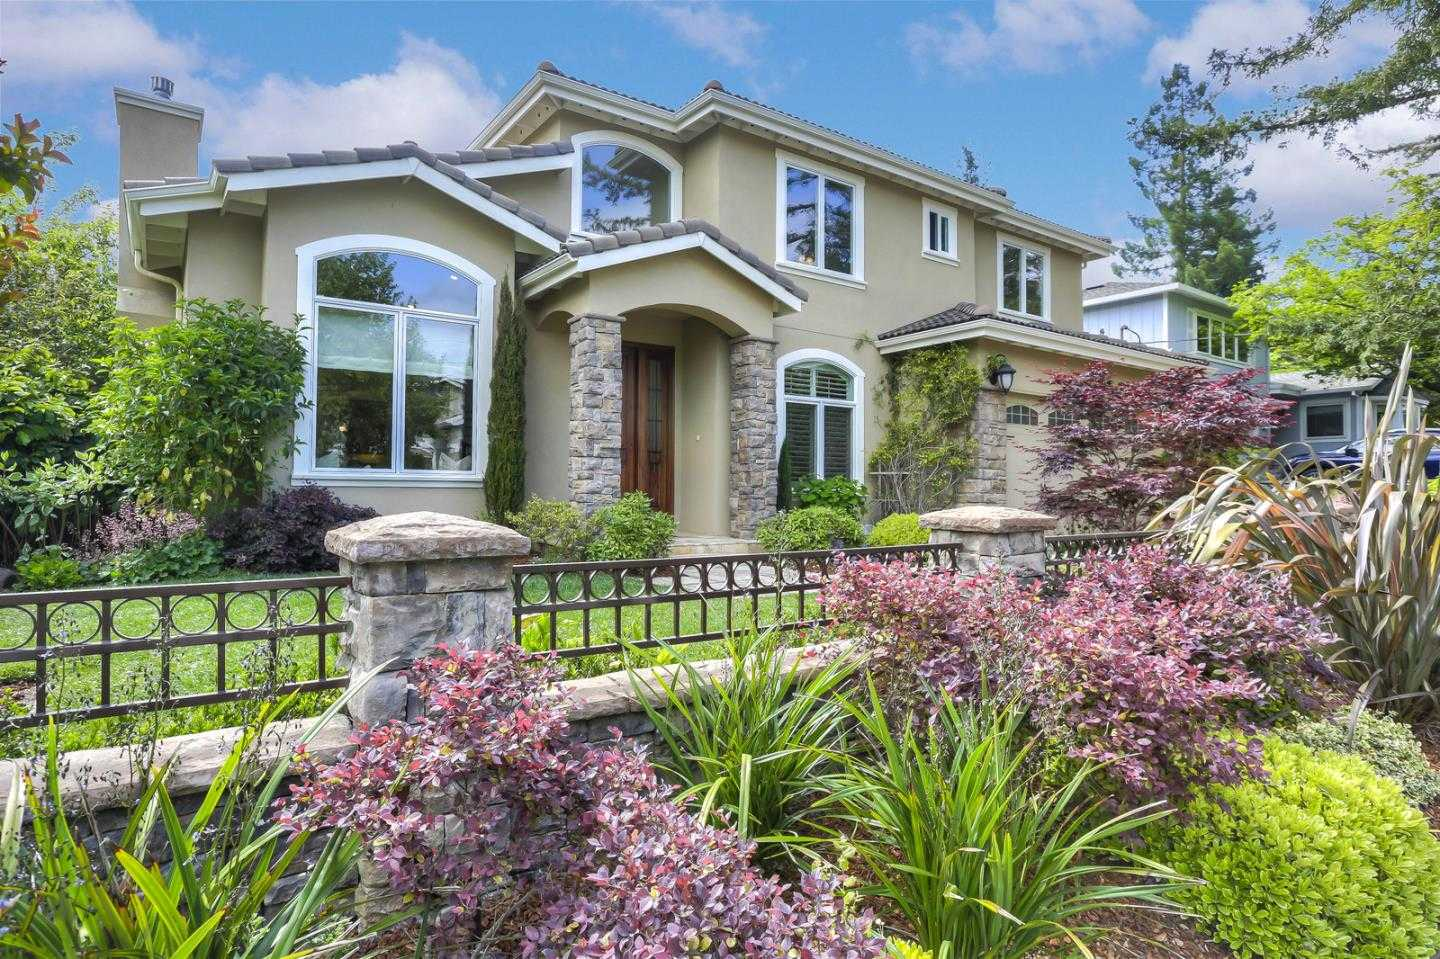 $4,450,000 - 5Br/5Ba -  for Sale in Menlo Park